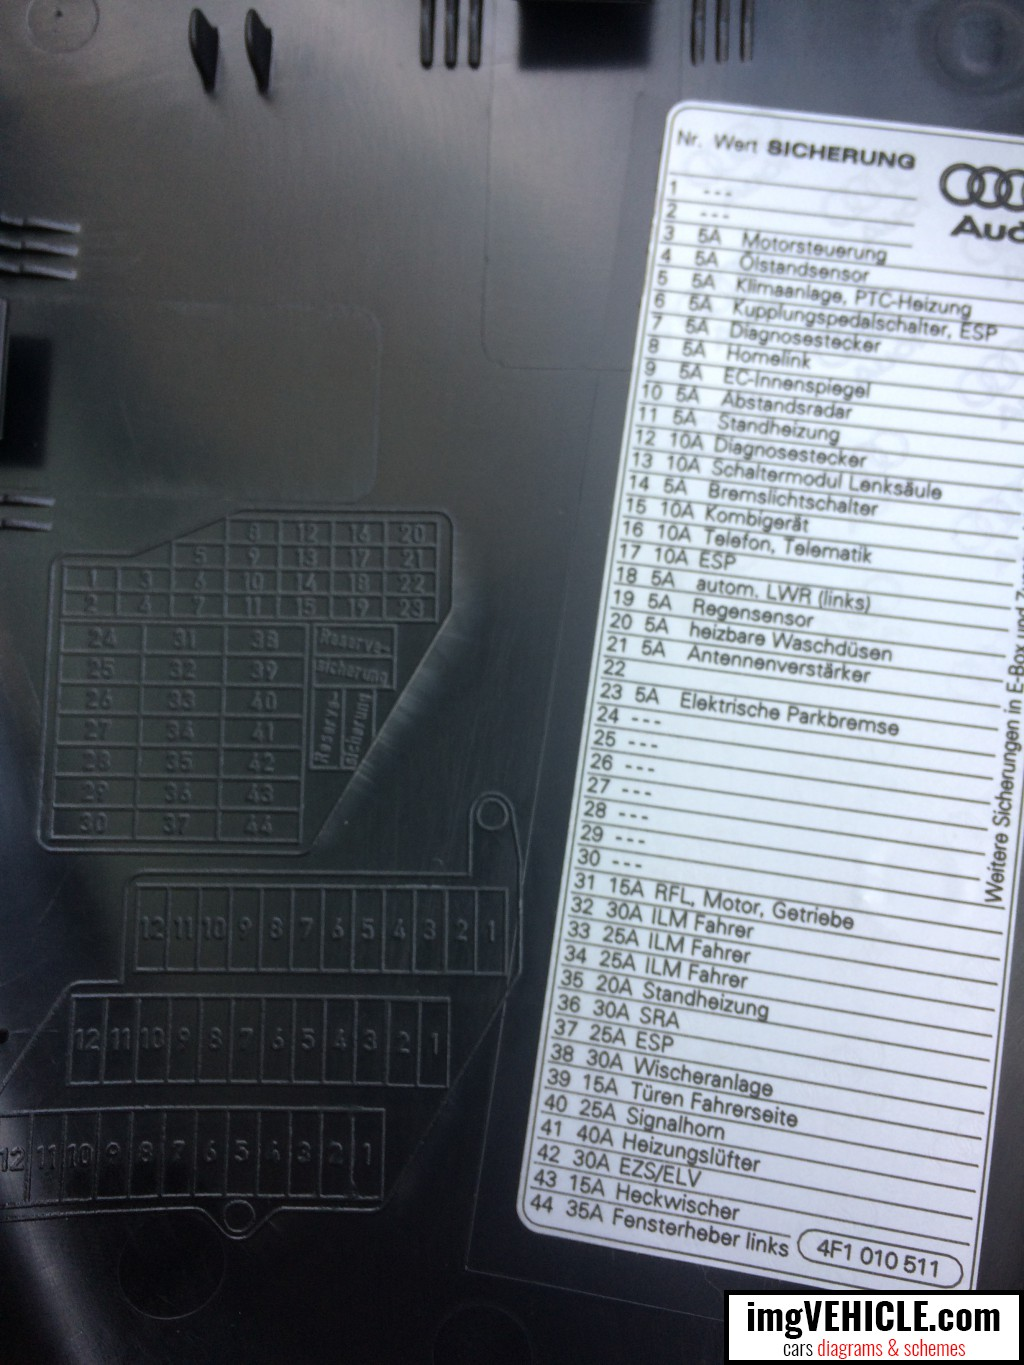 Audi A6 C6 Fuse Box Diagrams Schemes 2010 Mazda New M 3 Diagram Dash Panel